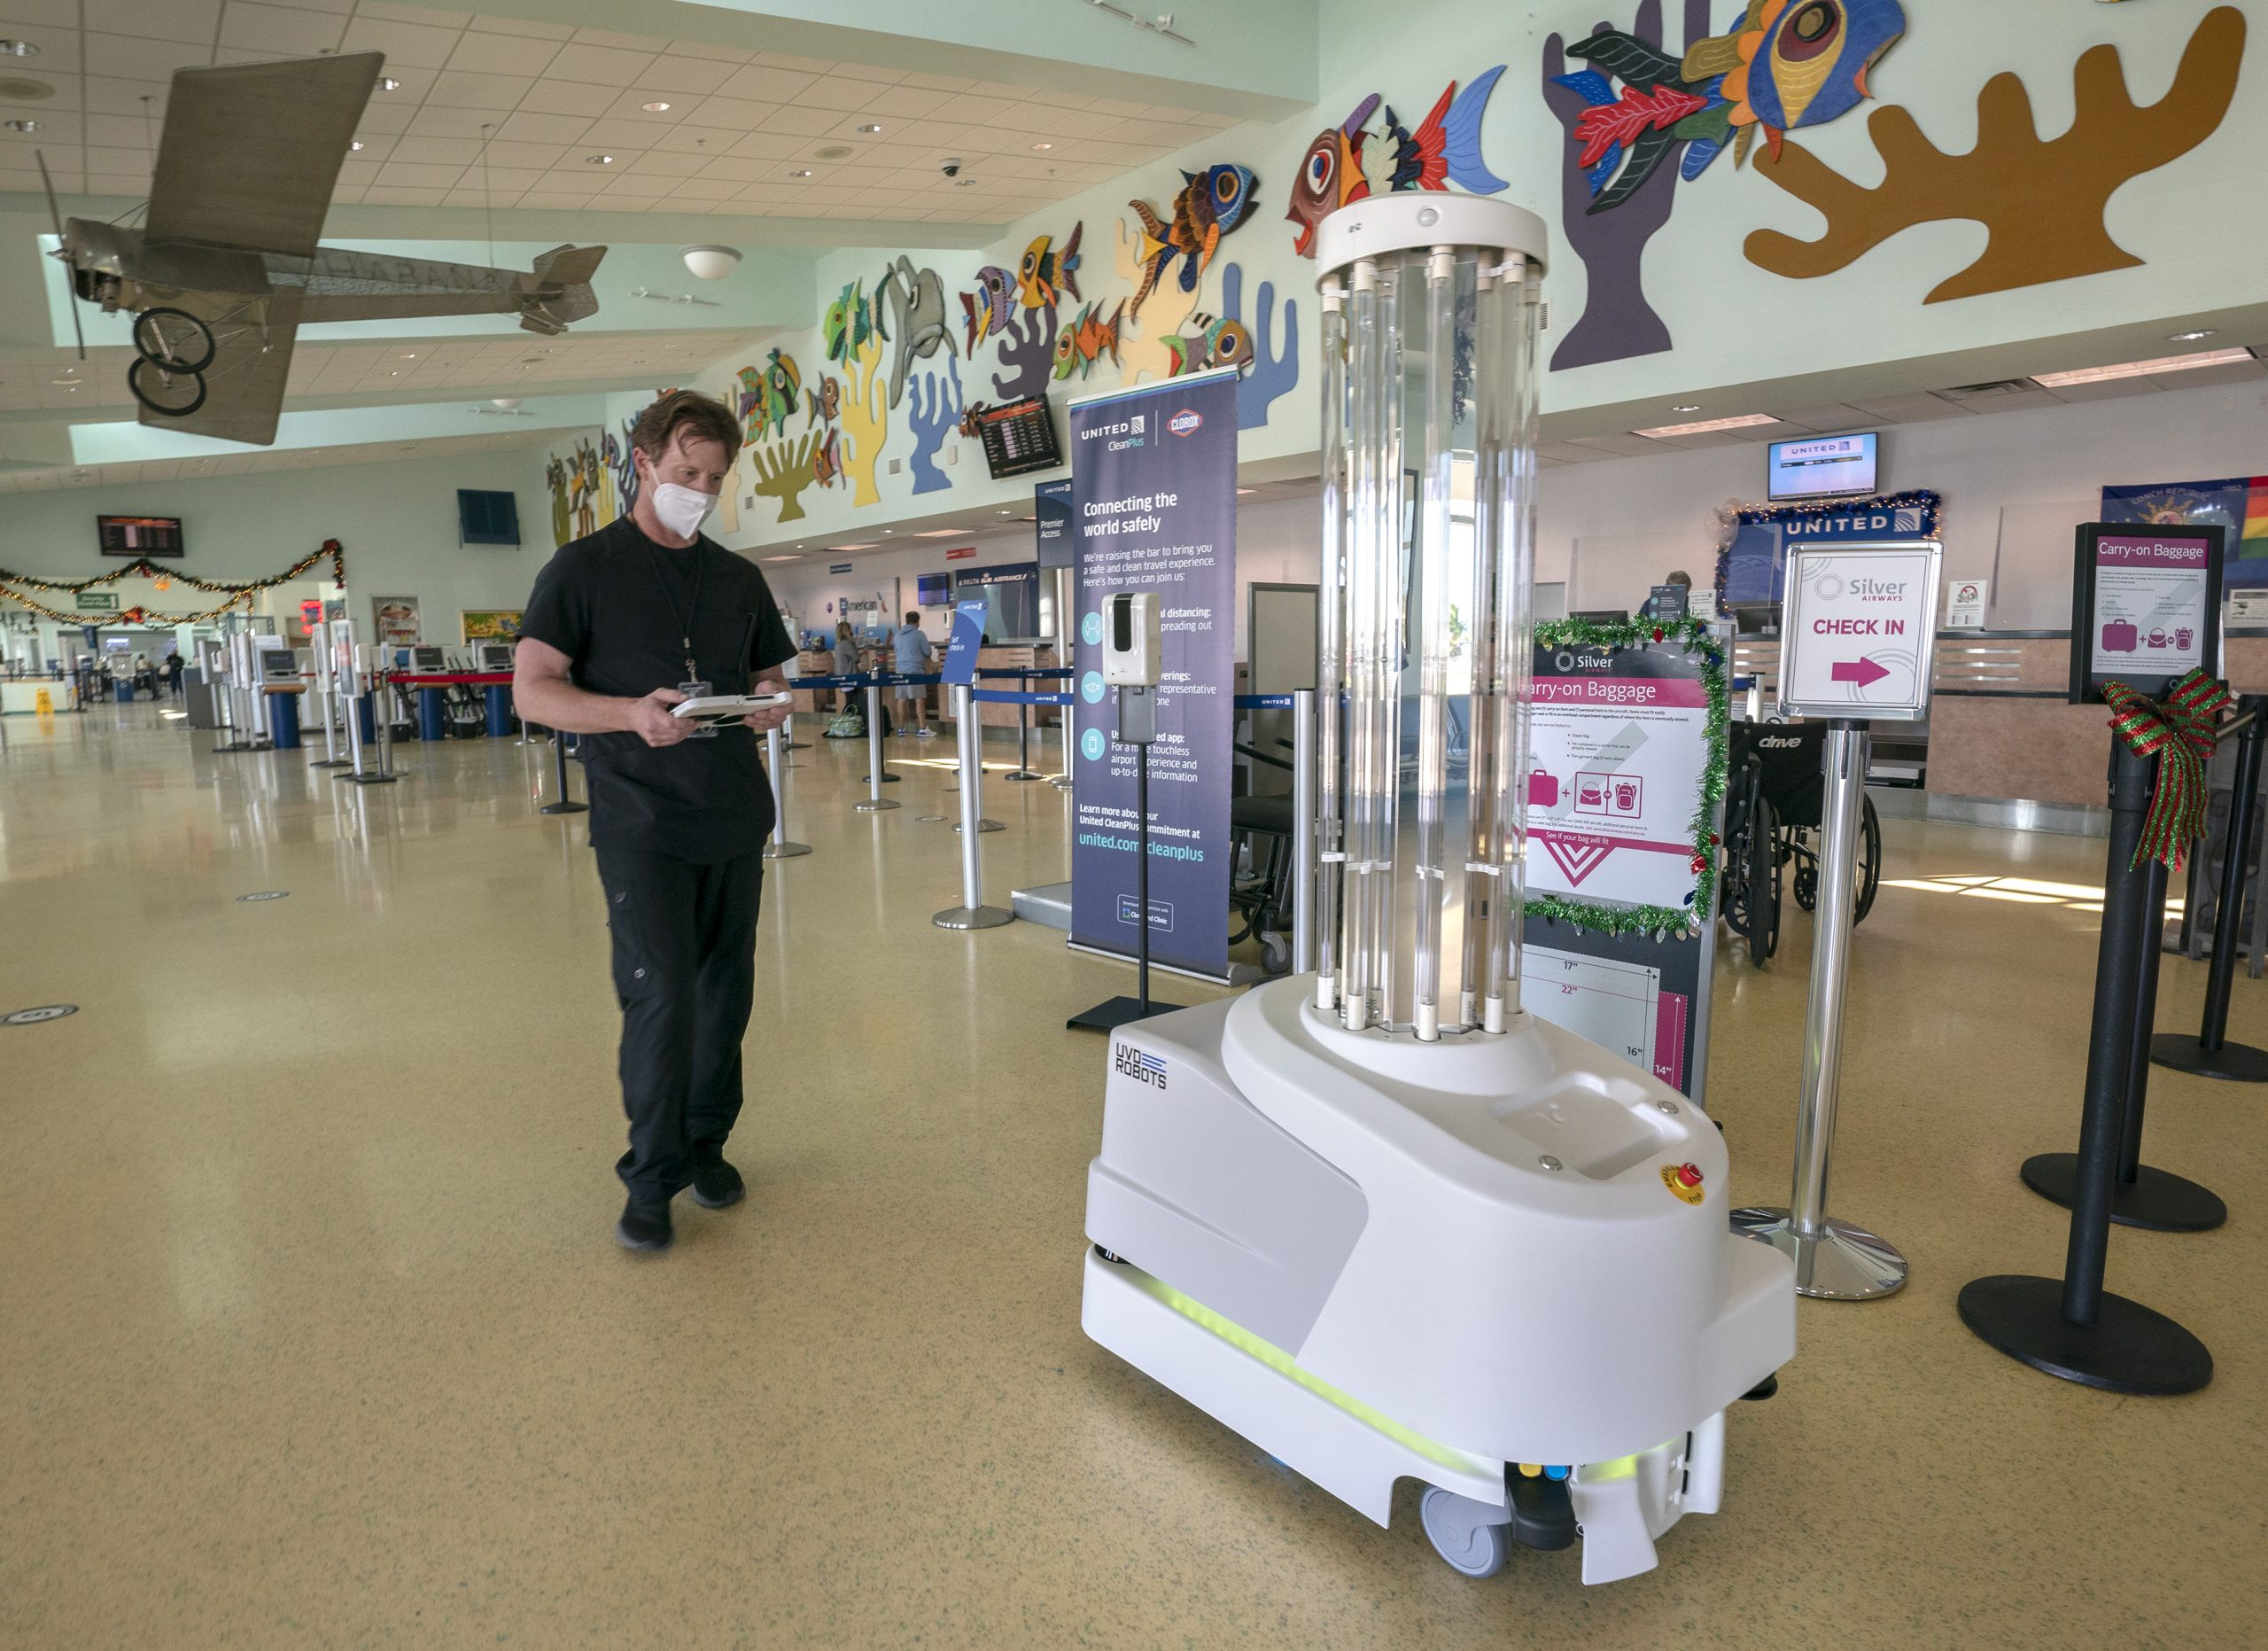 Key West Airport fights COVID-19 with ultraviolet disinfection robot